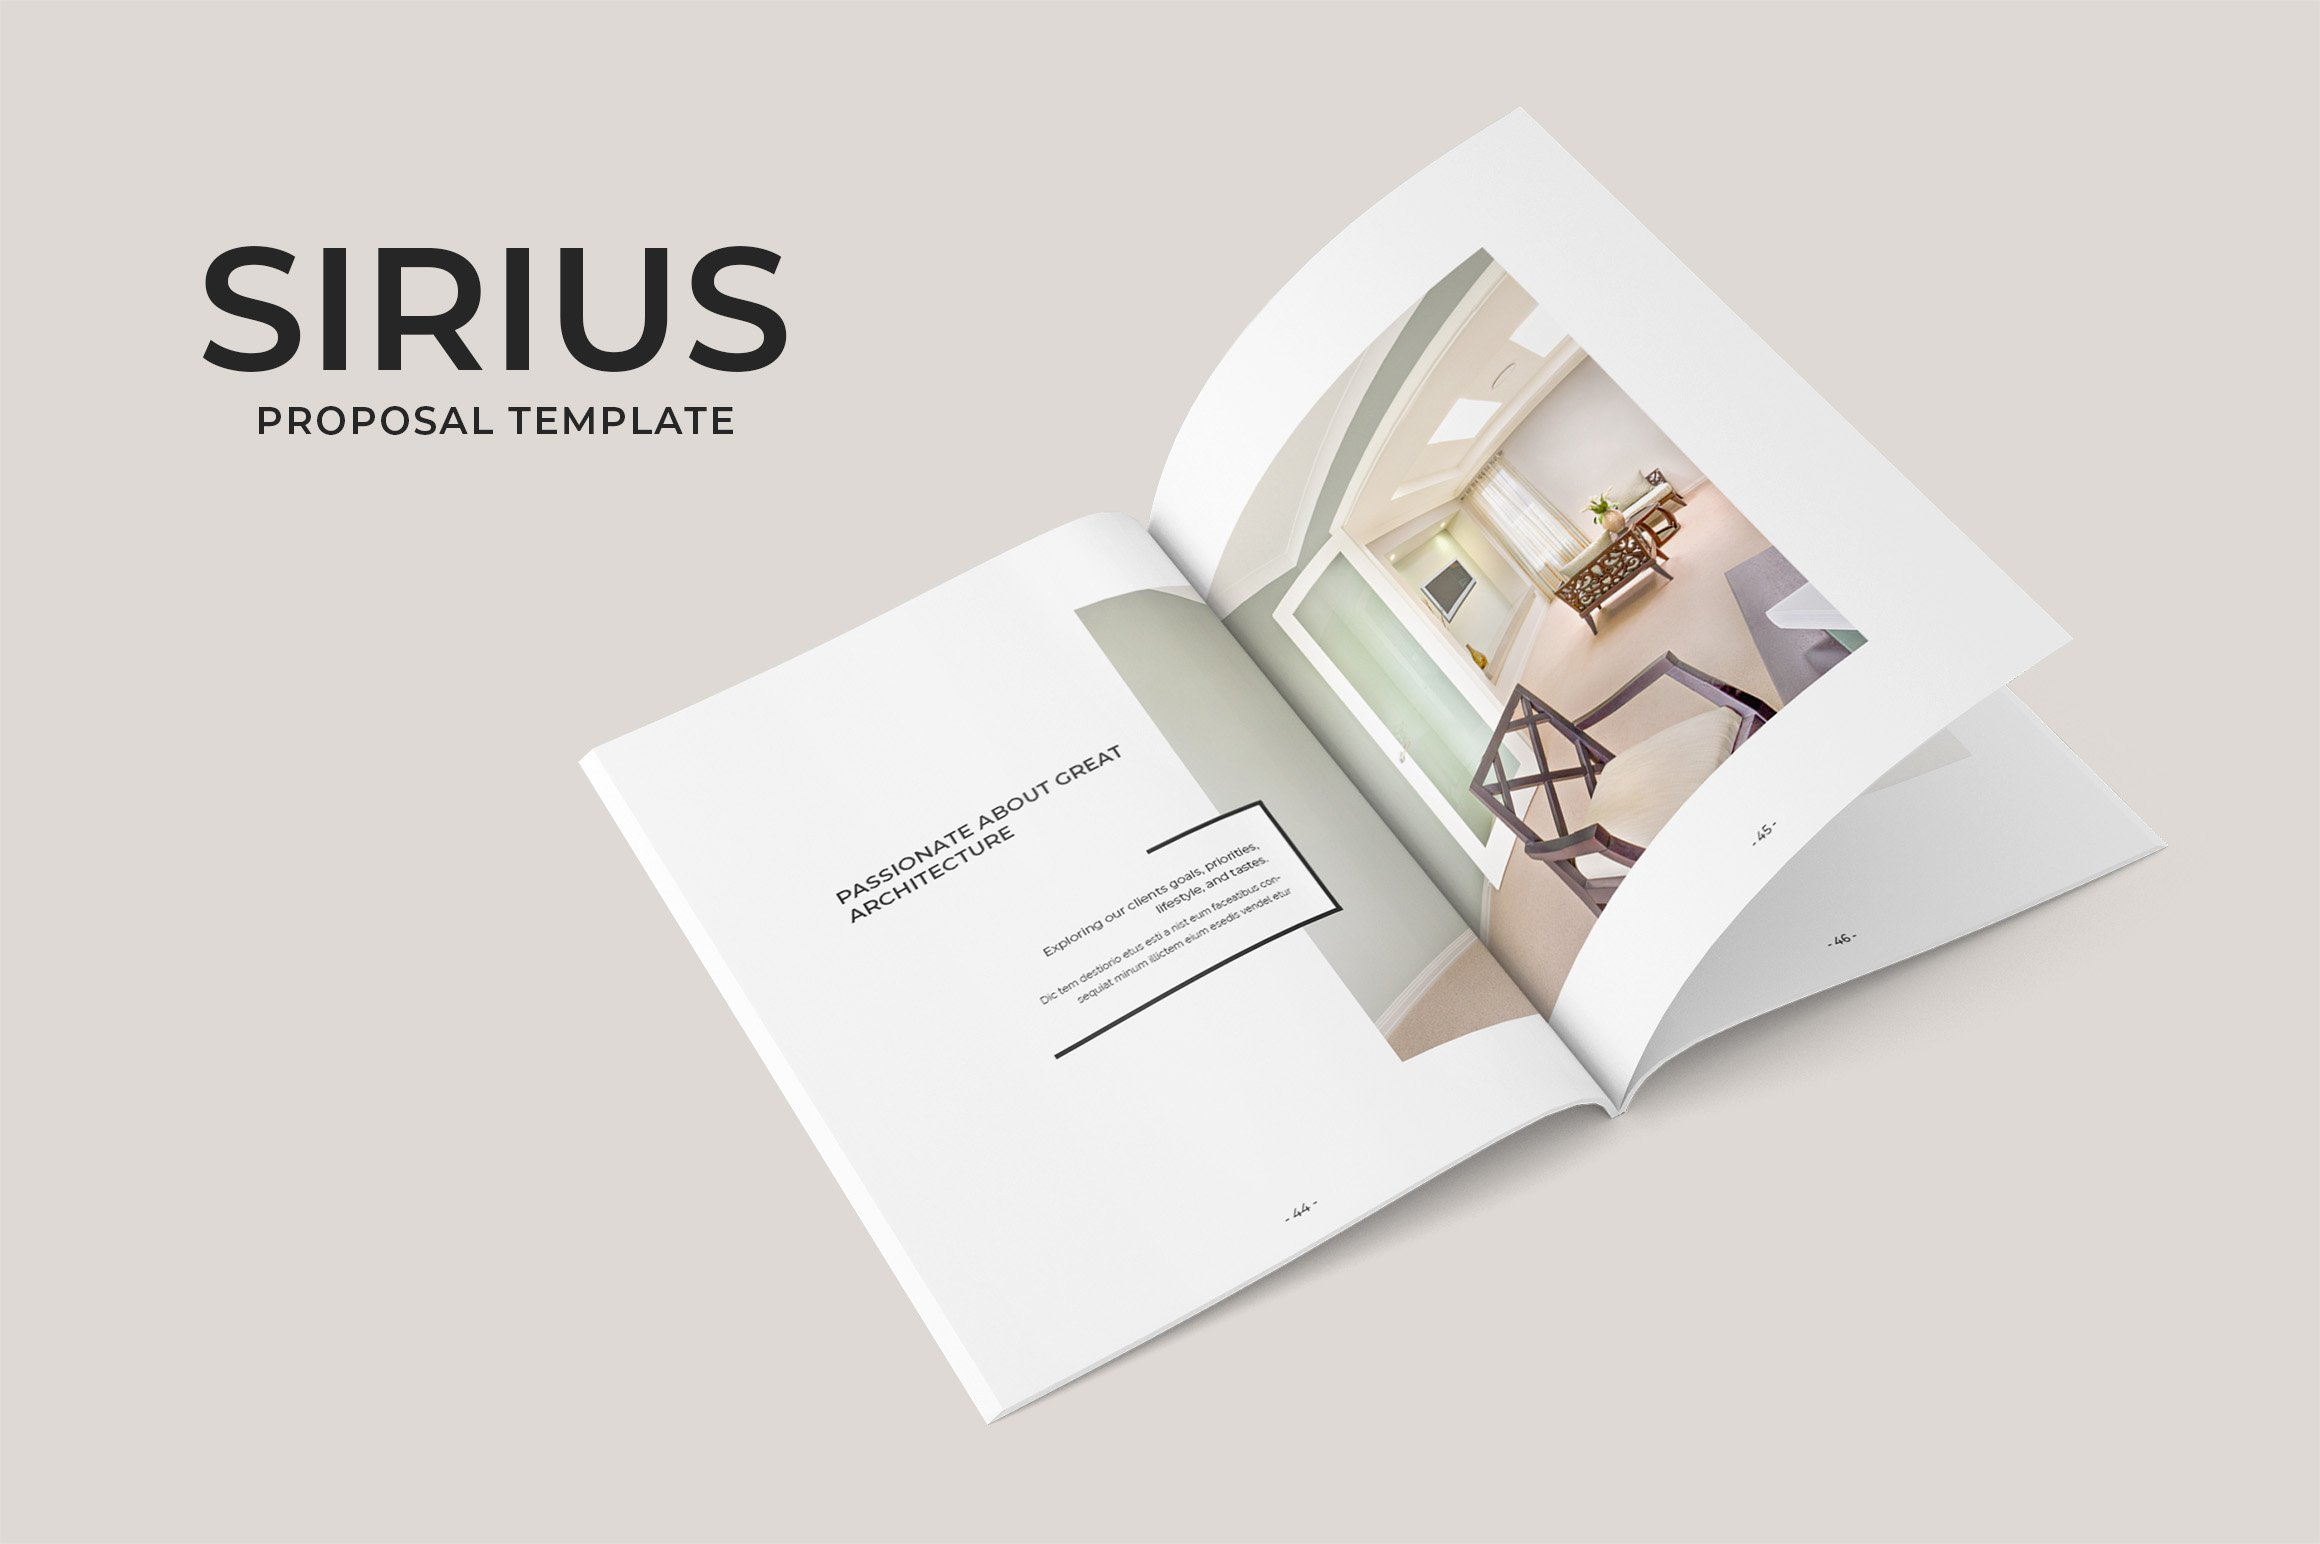 Sirius Proposal Template Brochure Templates Creative Market